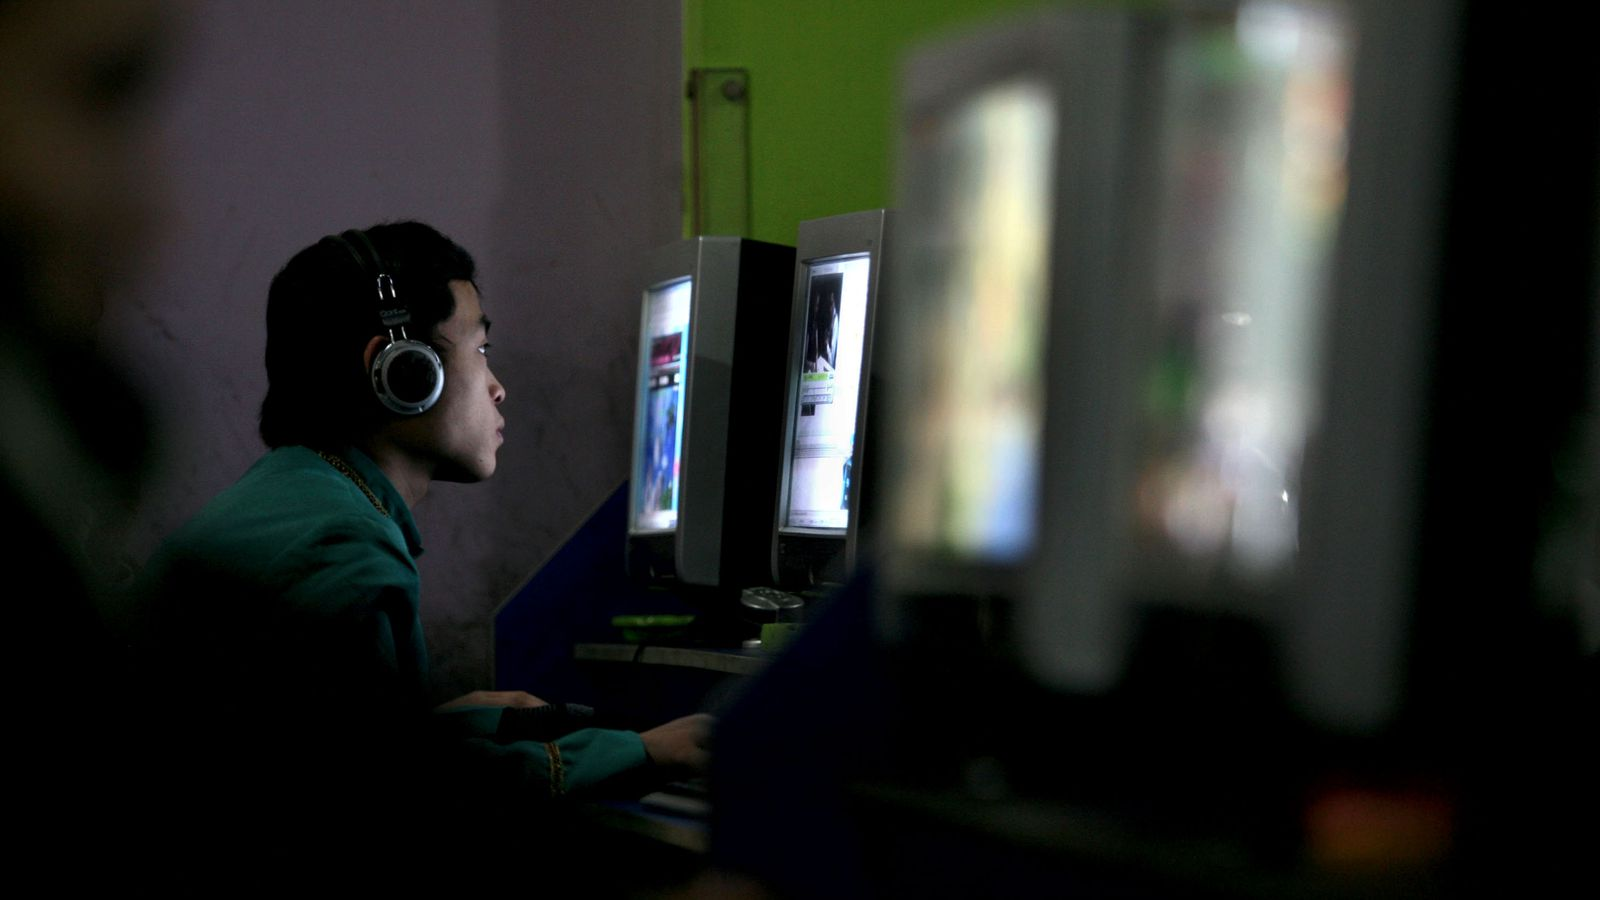 China is forcing internet companies to end online anonymity